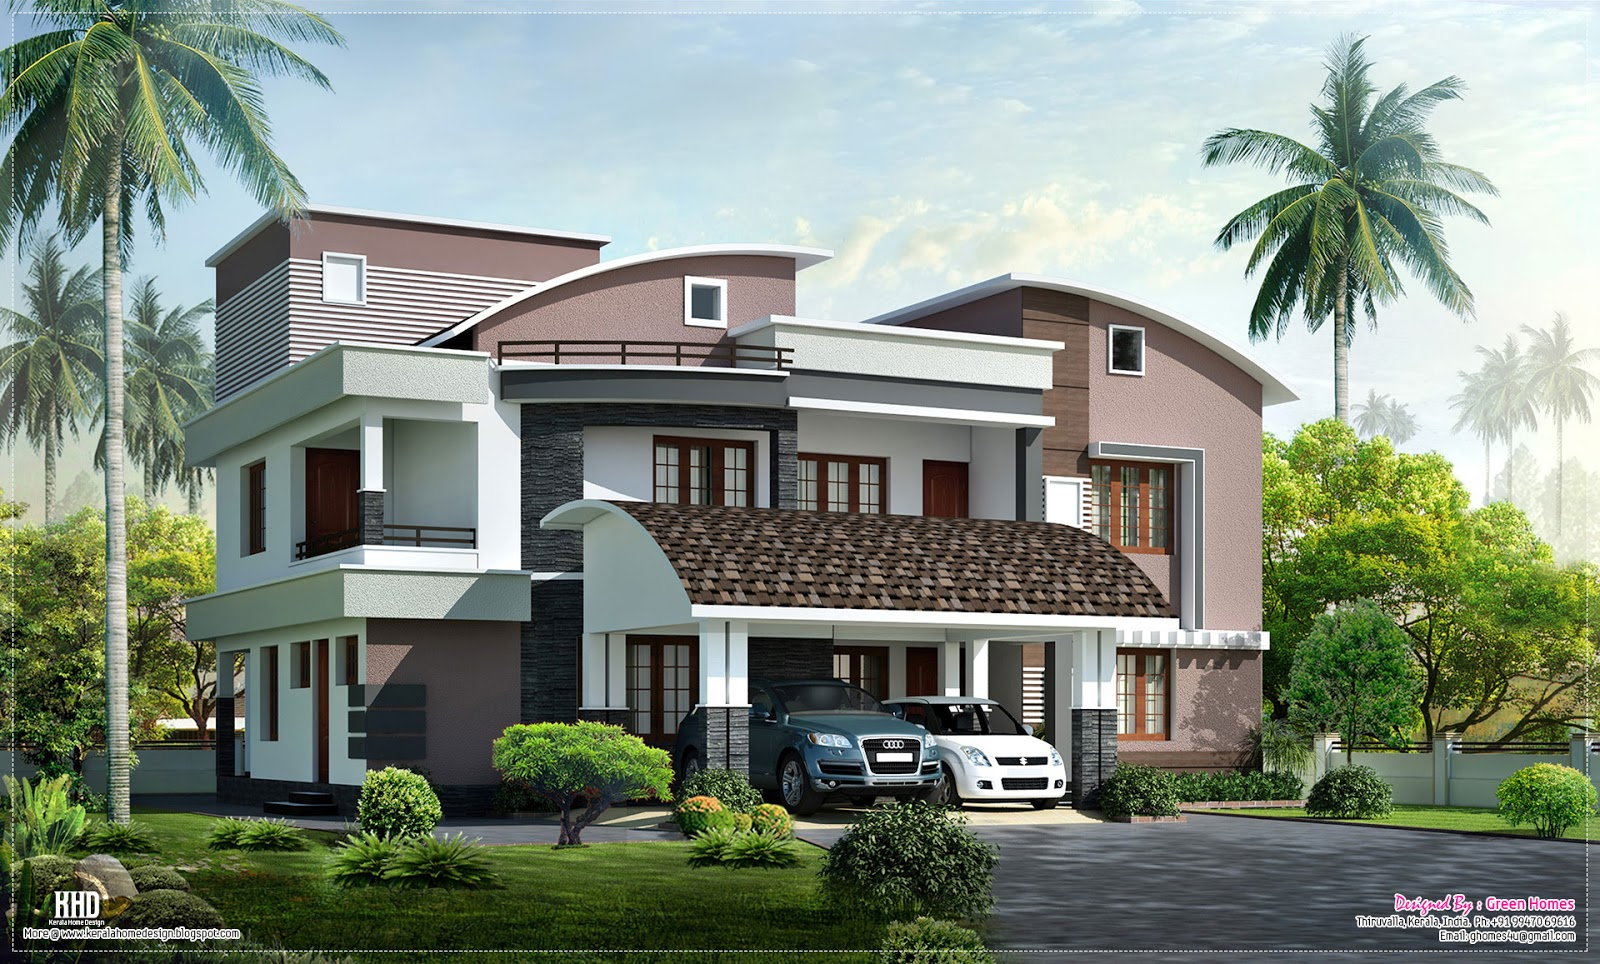 modern style luxury villa exterior design home kerala plans. Black Bedroom Furniture Sets. Home Design Ideas